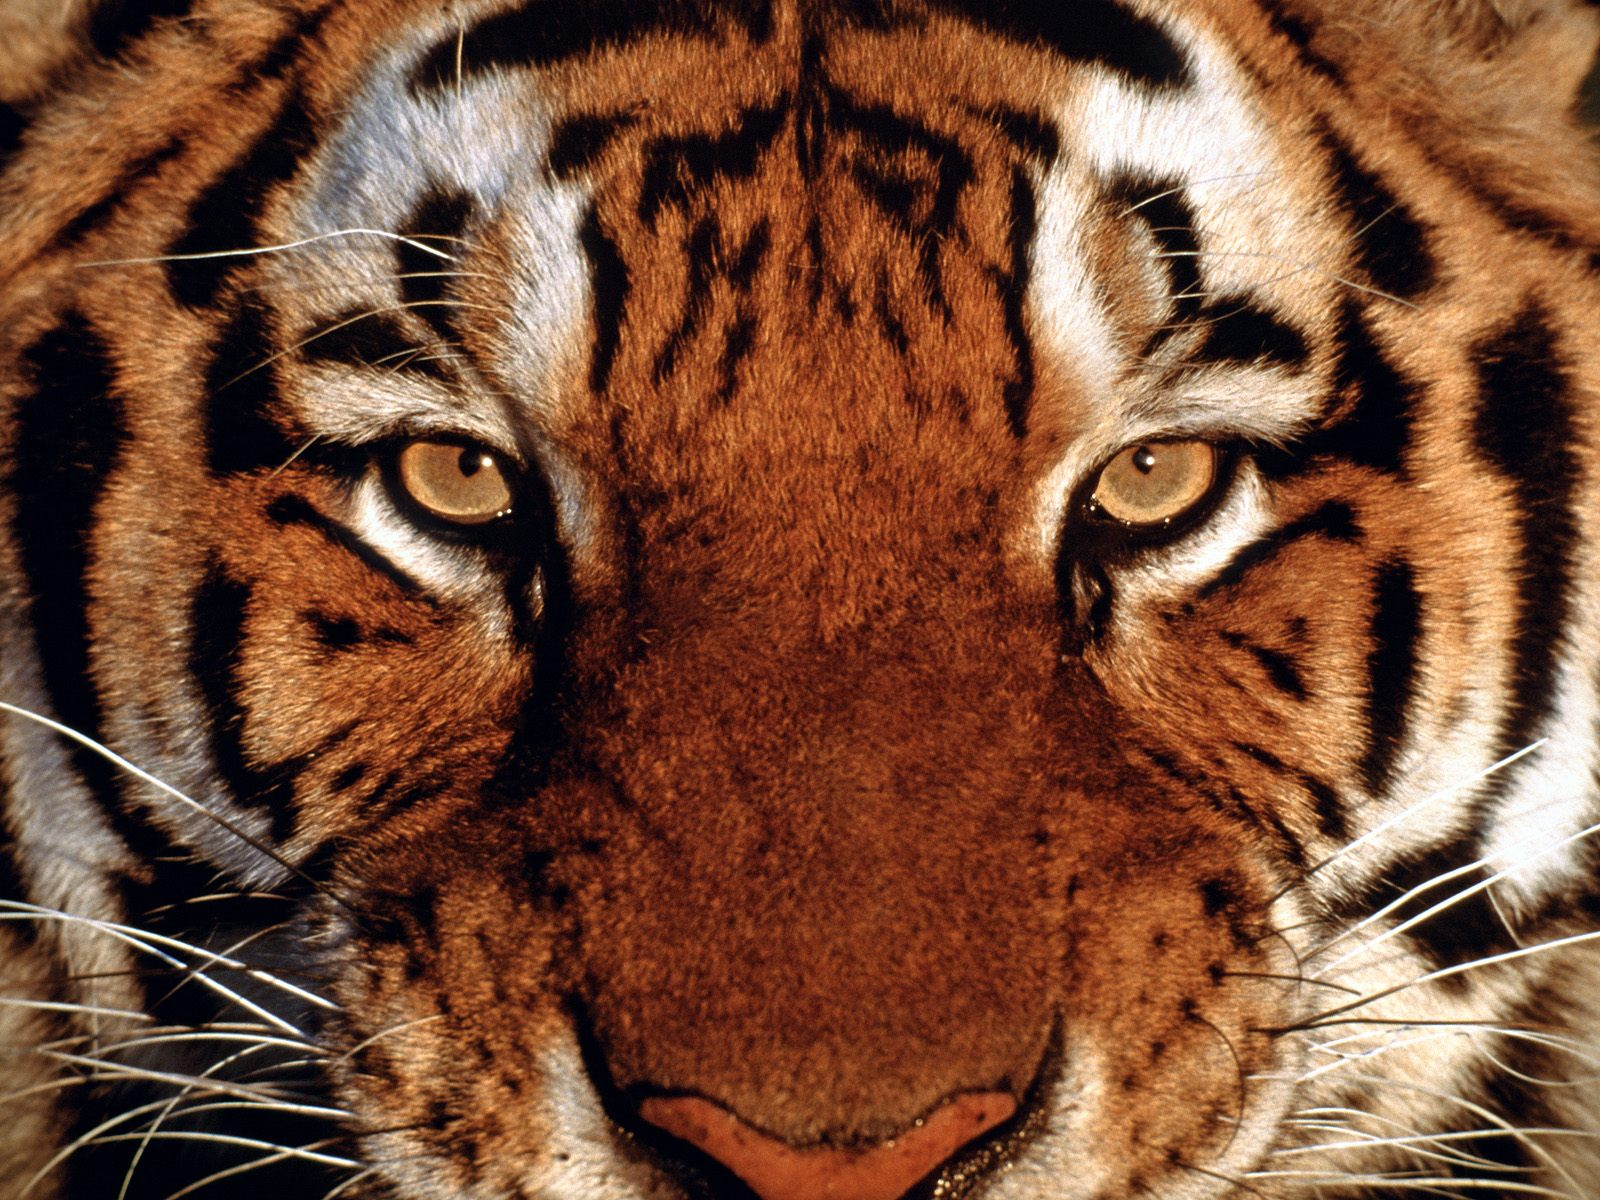 1600x1200 Tiger portrait desktop wallpapers and stock photos